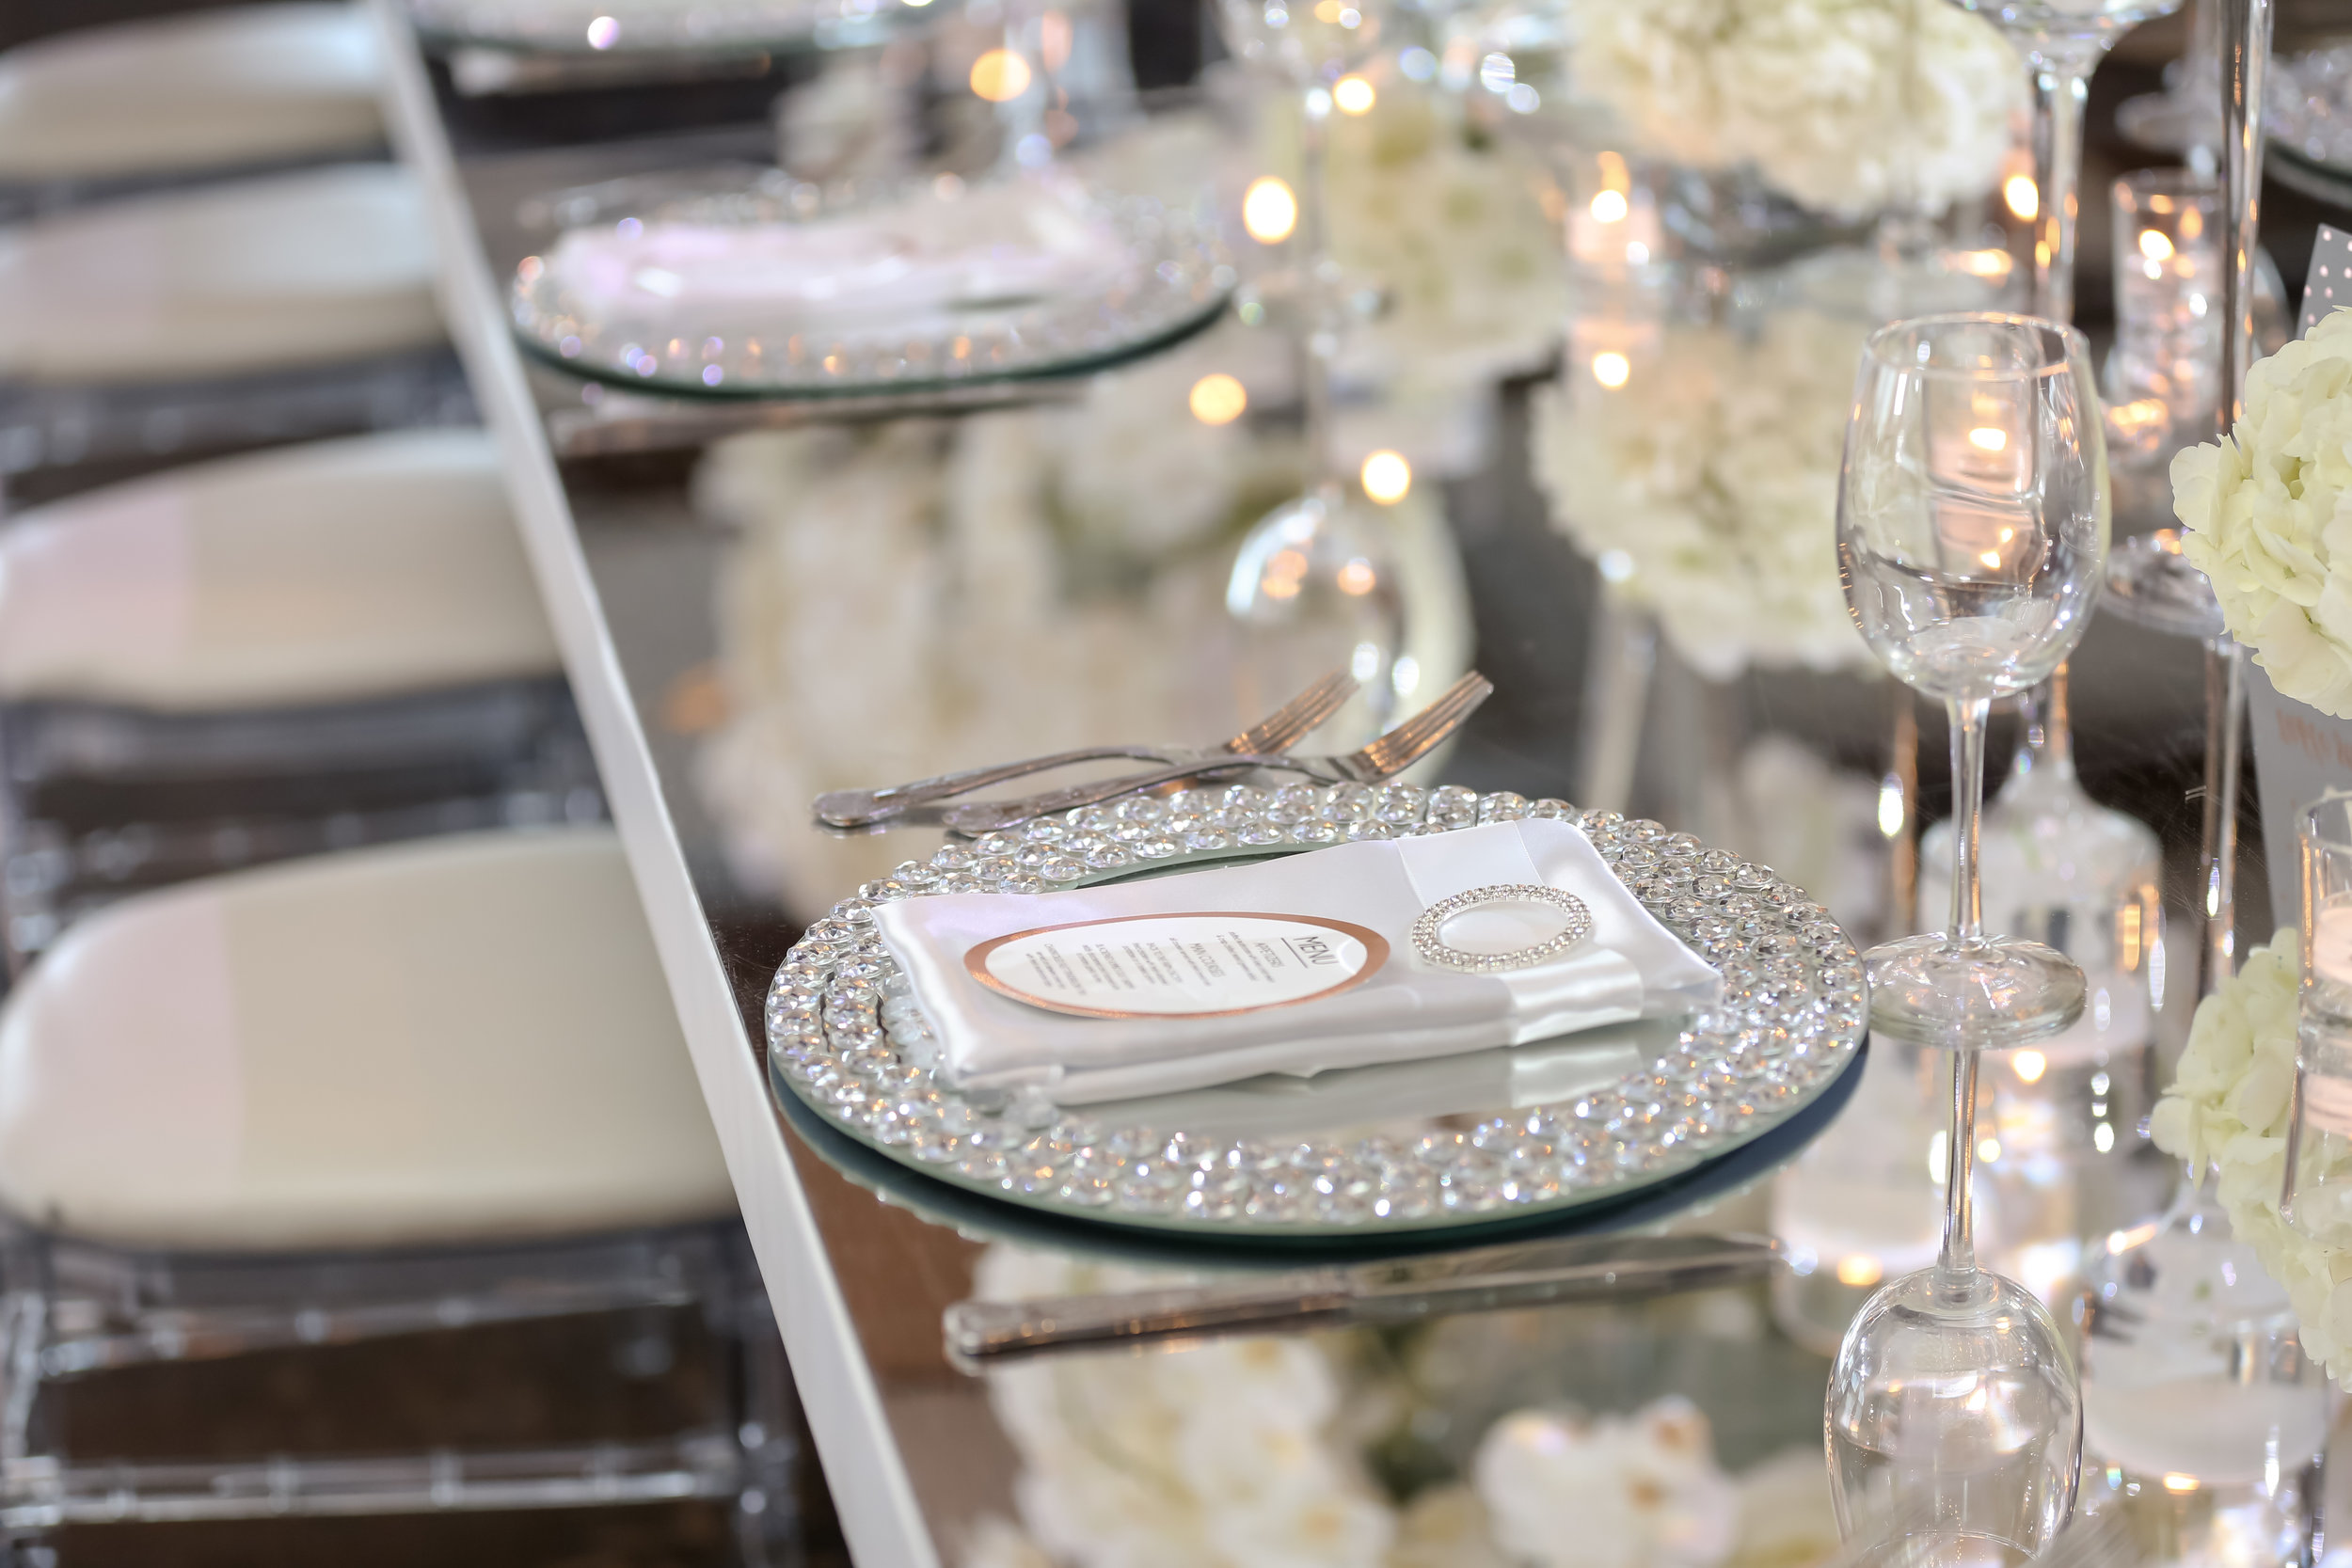 Feasting tables featured mirror tops, and place settings were accented with rhinestone napkin rings.